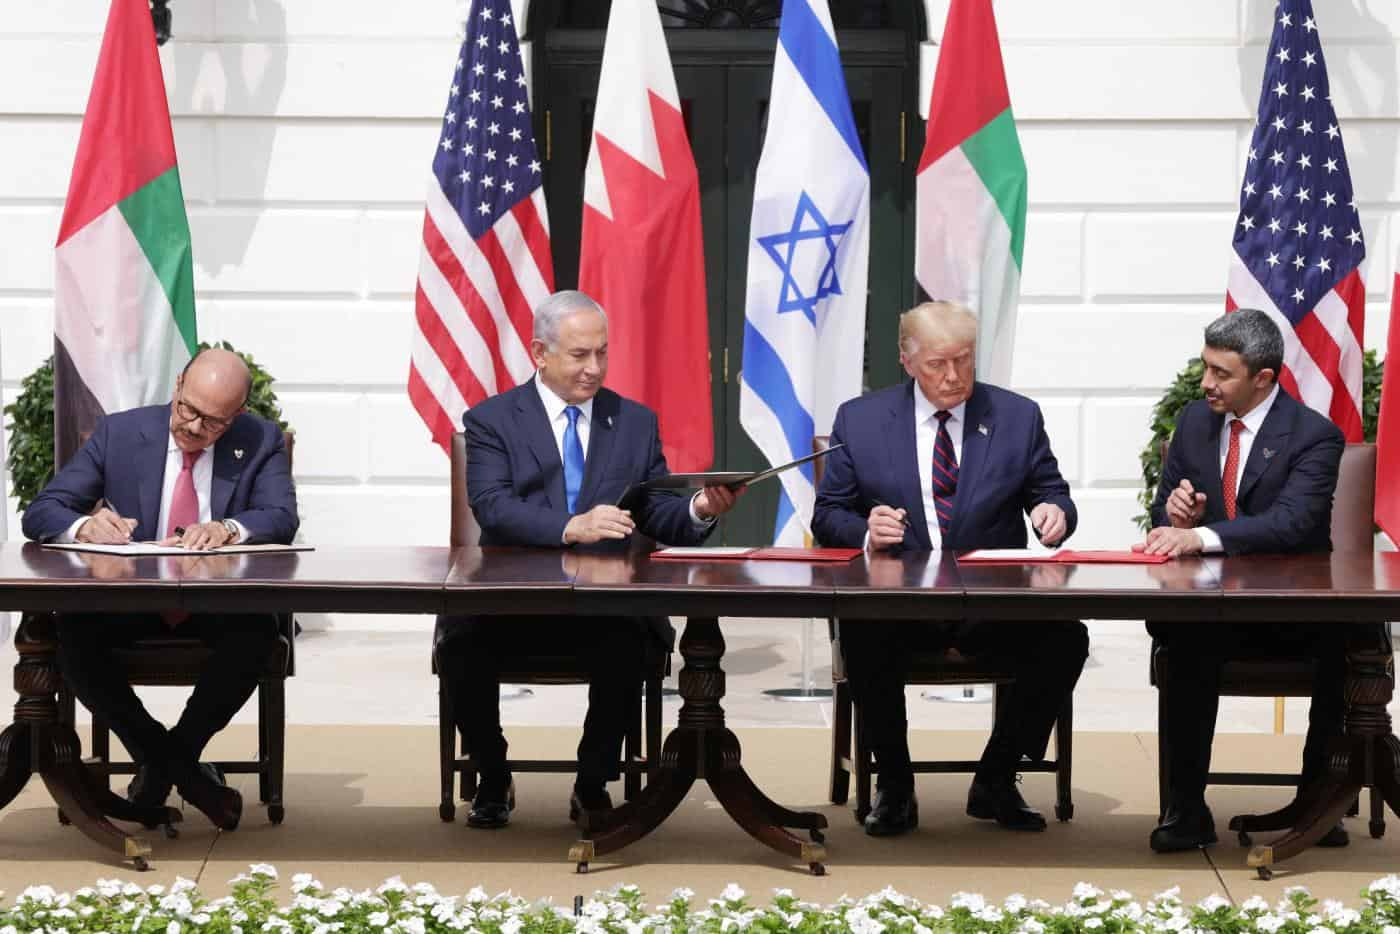 UAE And Bahrain Israel Deal: Trump Is Set For The Dawn Of A New Middle East